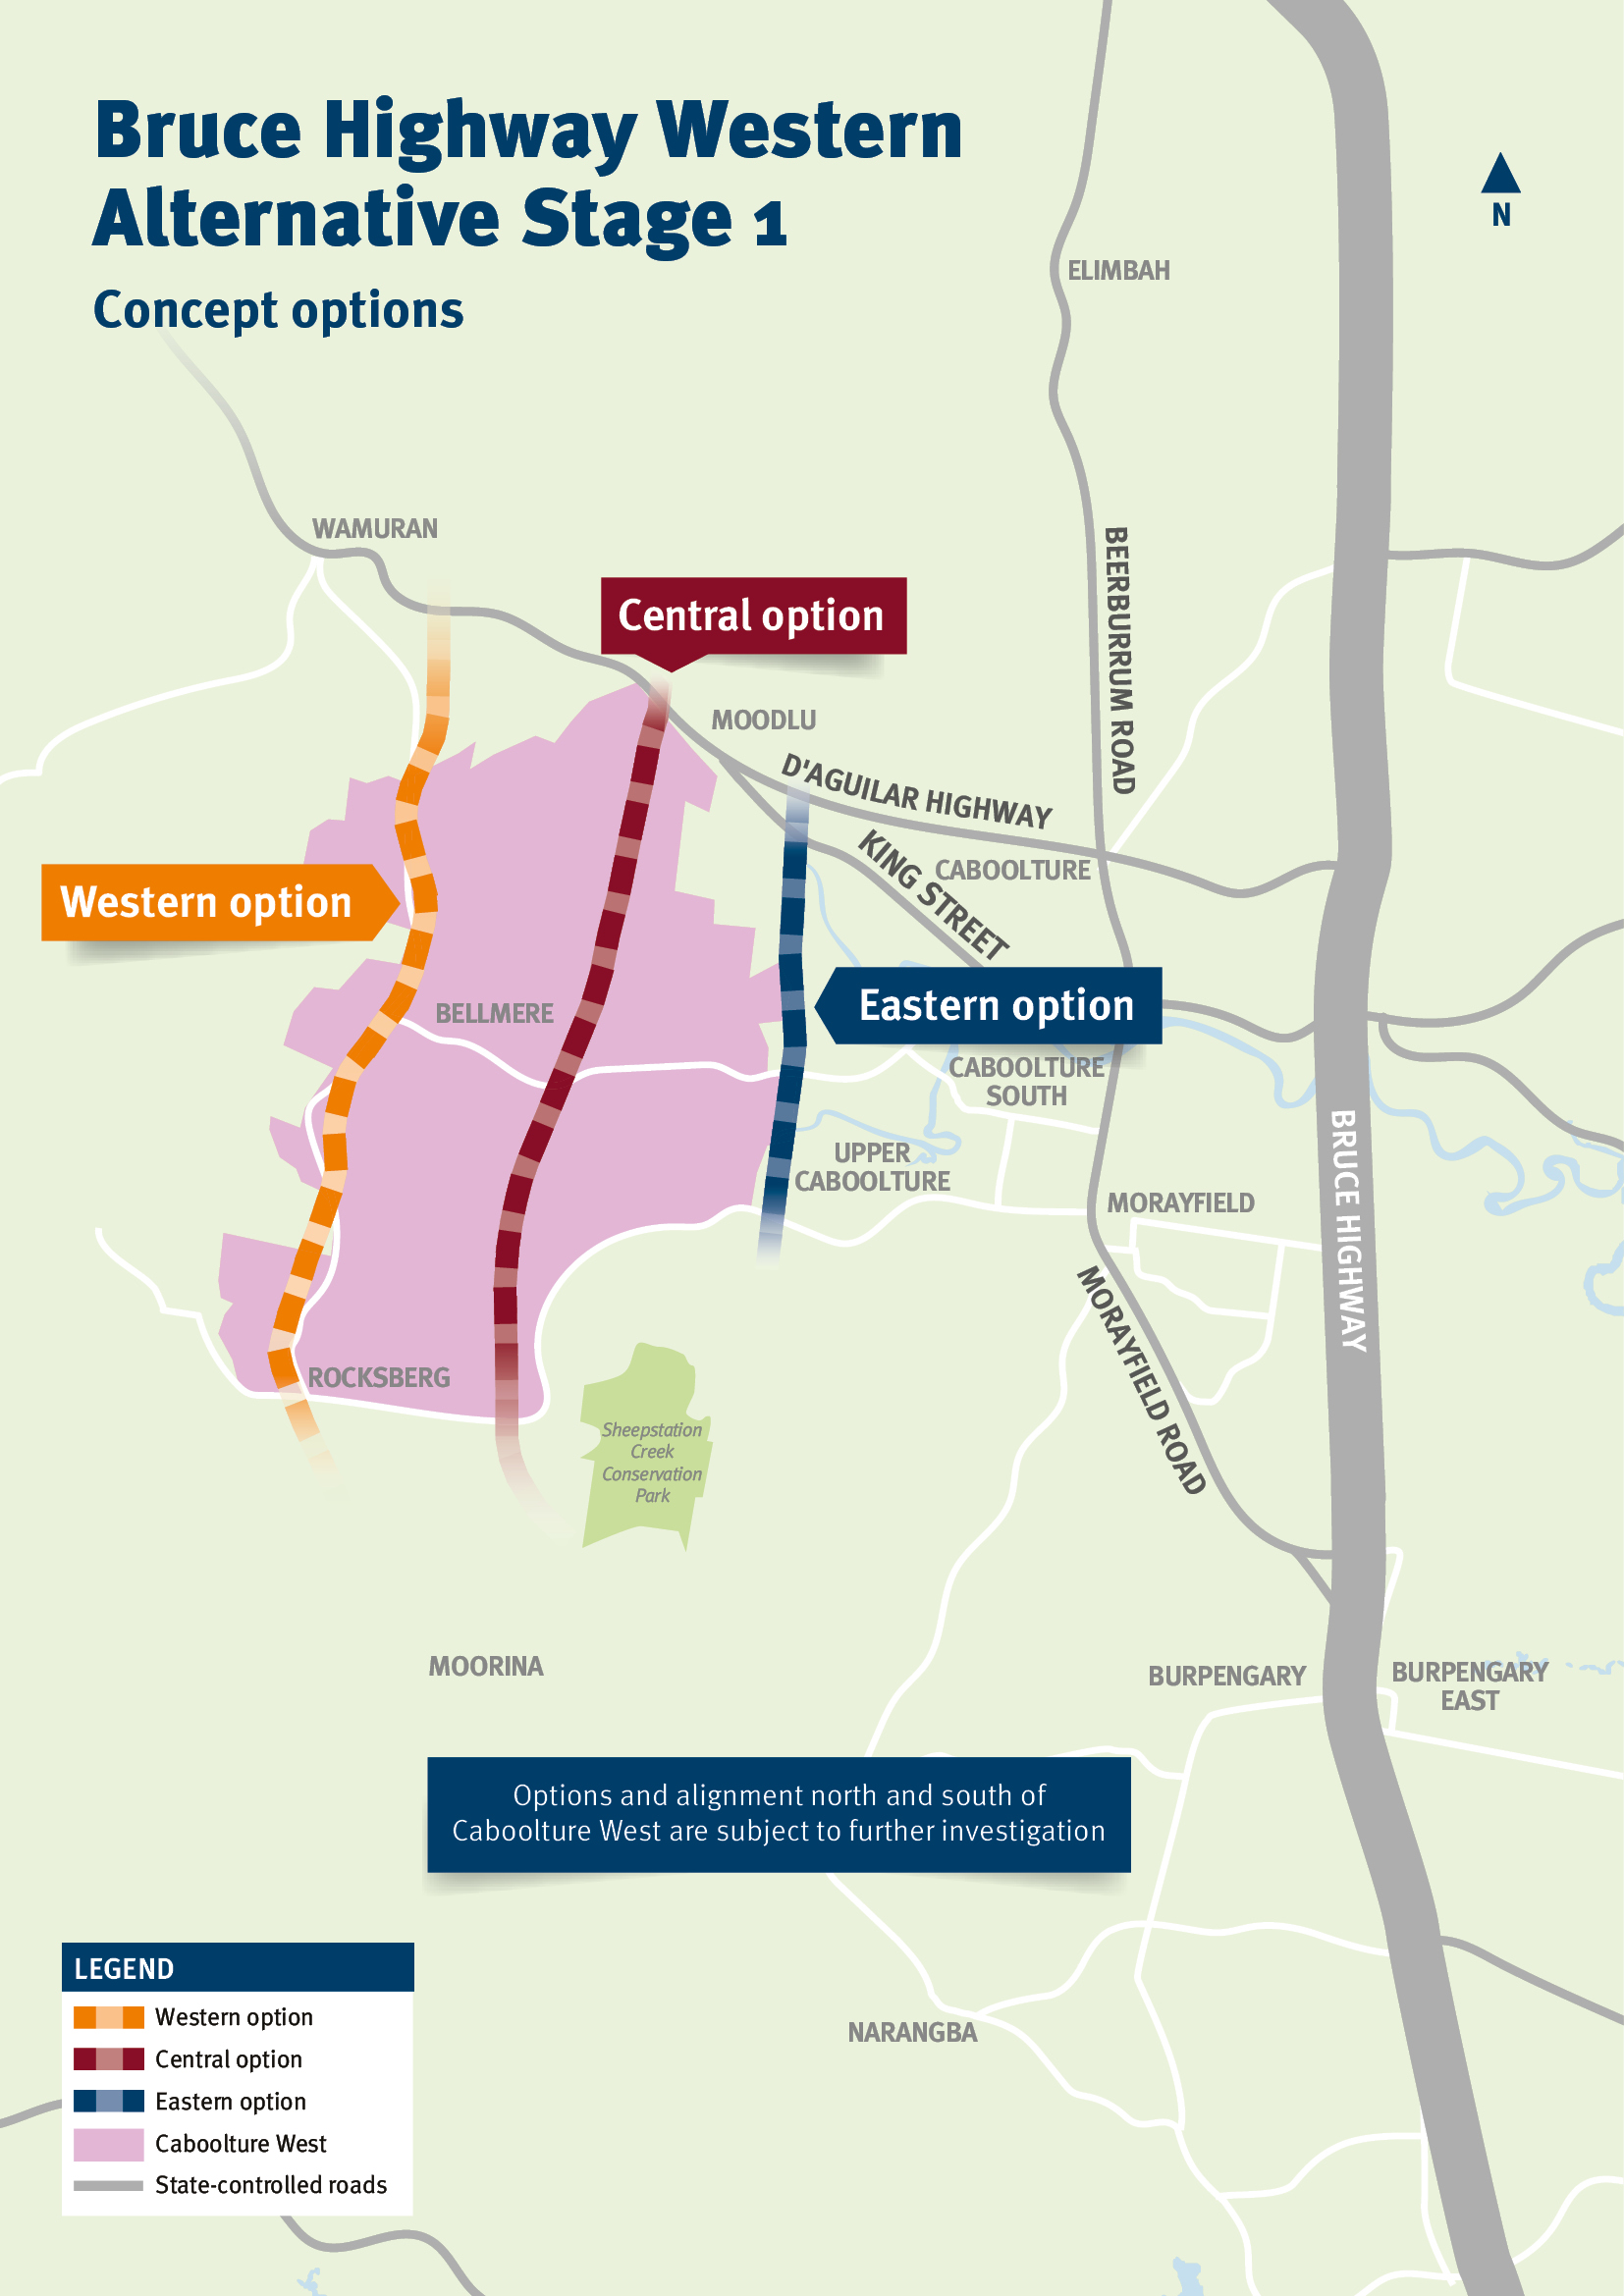 Concept options map for the Bruce Highway Western Alternative Stage 1 (Caboolture West)